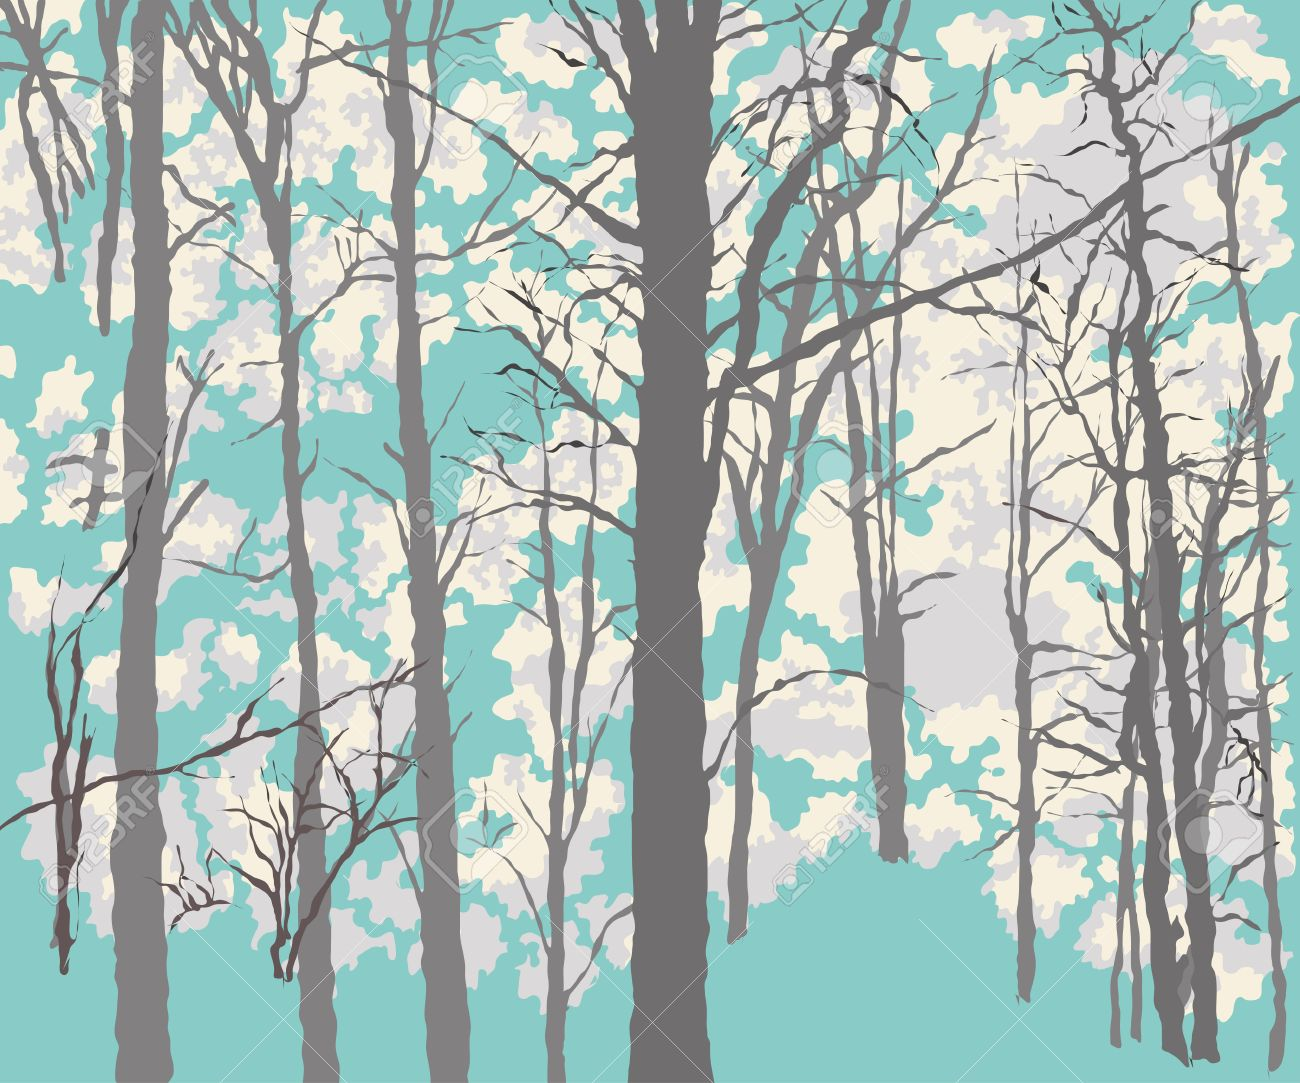 What is the history of this. Background Drawing Of The Dense Green Forest Royalty Free Cliparts Vectors And Stock Illustration Image 31575265